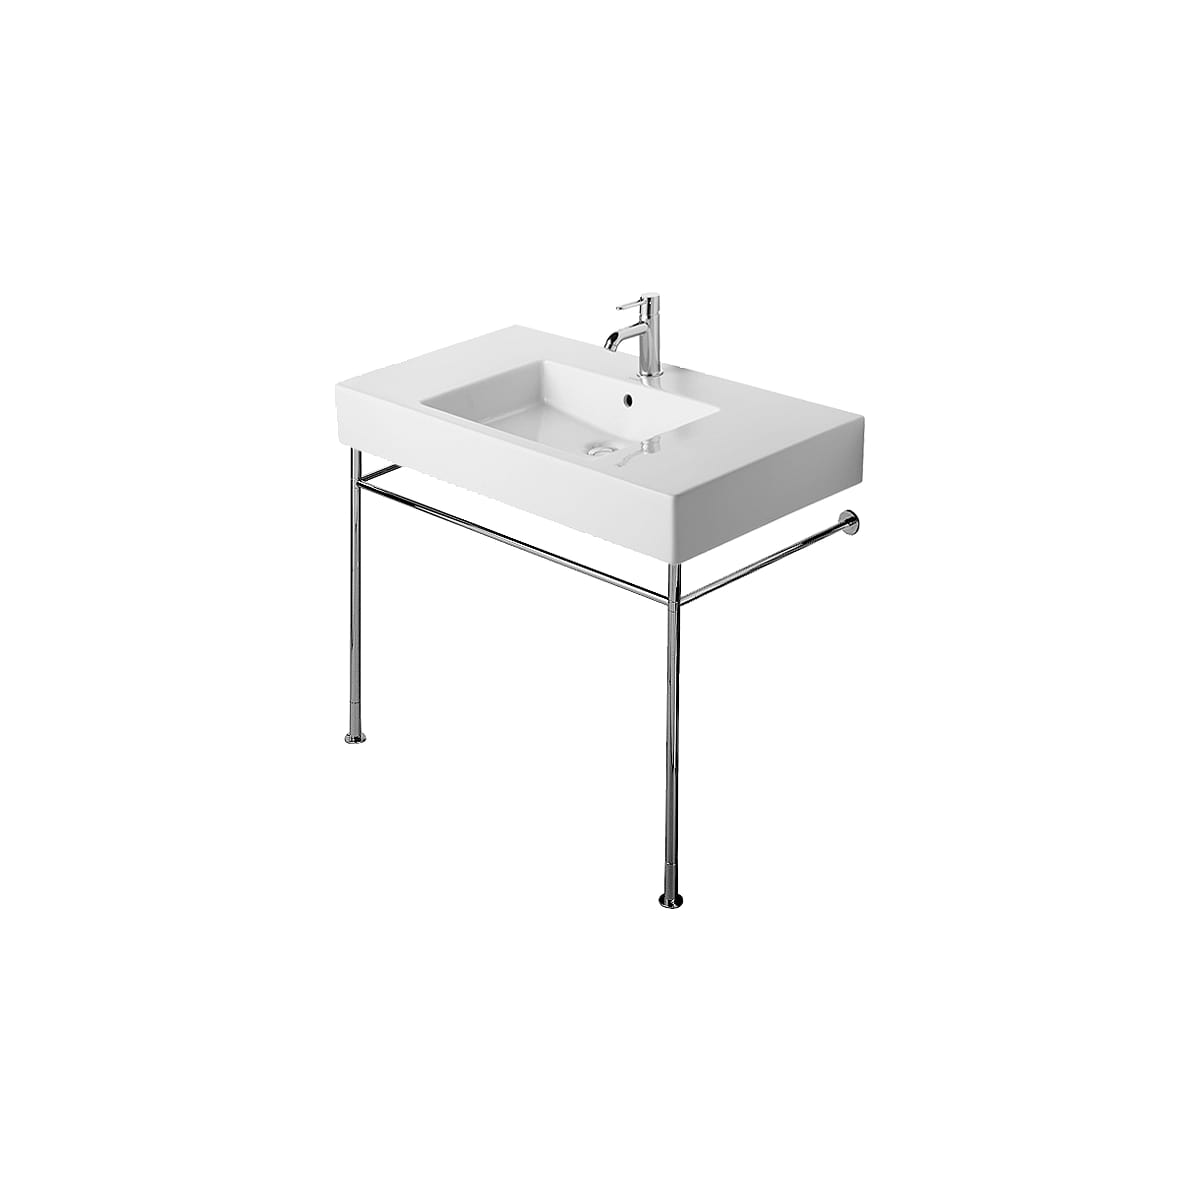 Duravit Vero Metal Console with Adjustable Height - Console Only